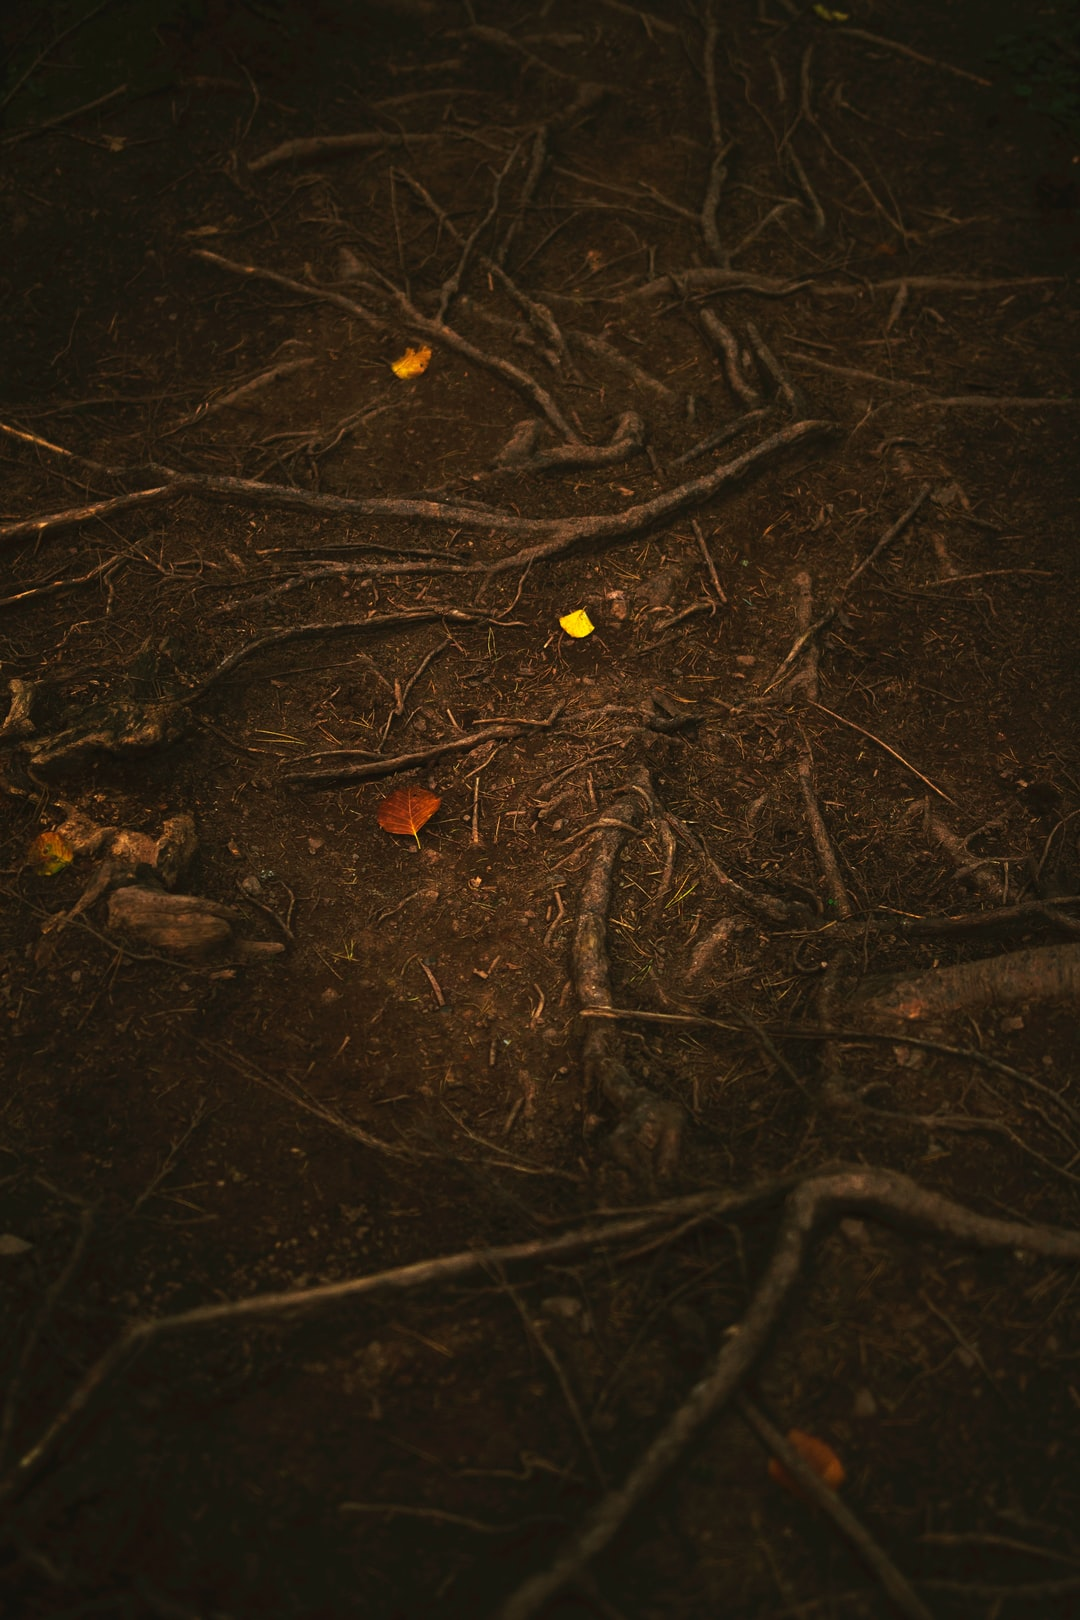 Autumn leaves among roots